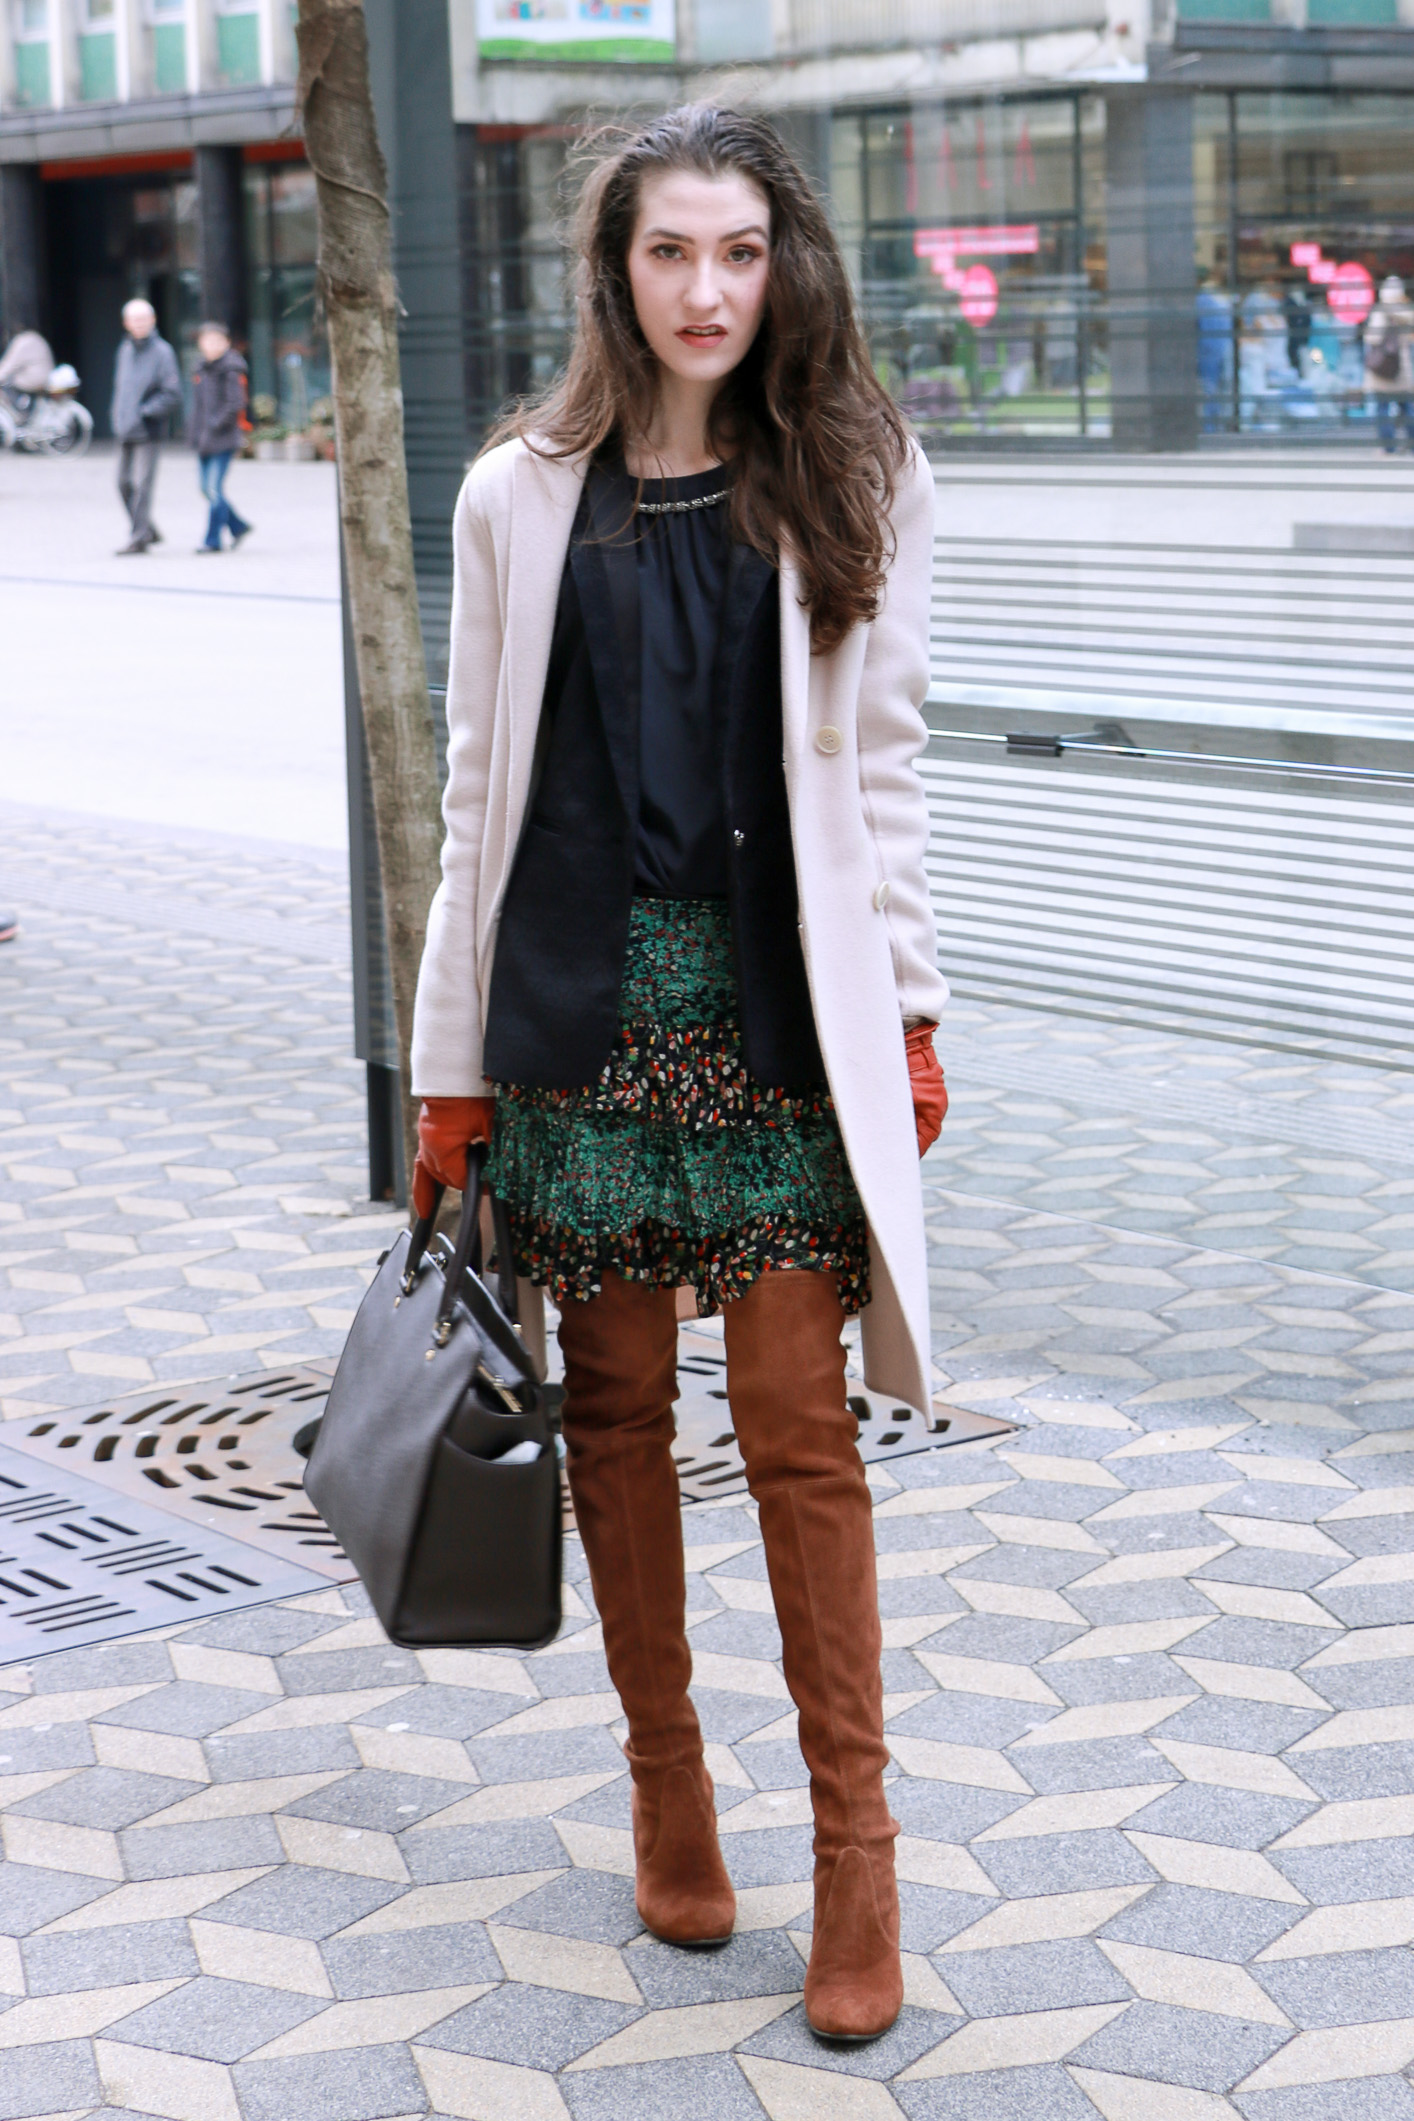 Fashion blogger Veronika Lipar of Brunette From Wall Street sharing her sexy weekend boho chic style